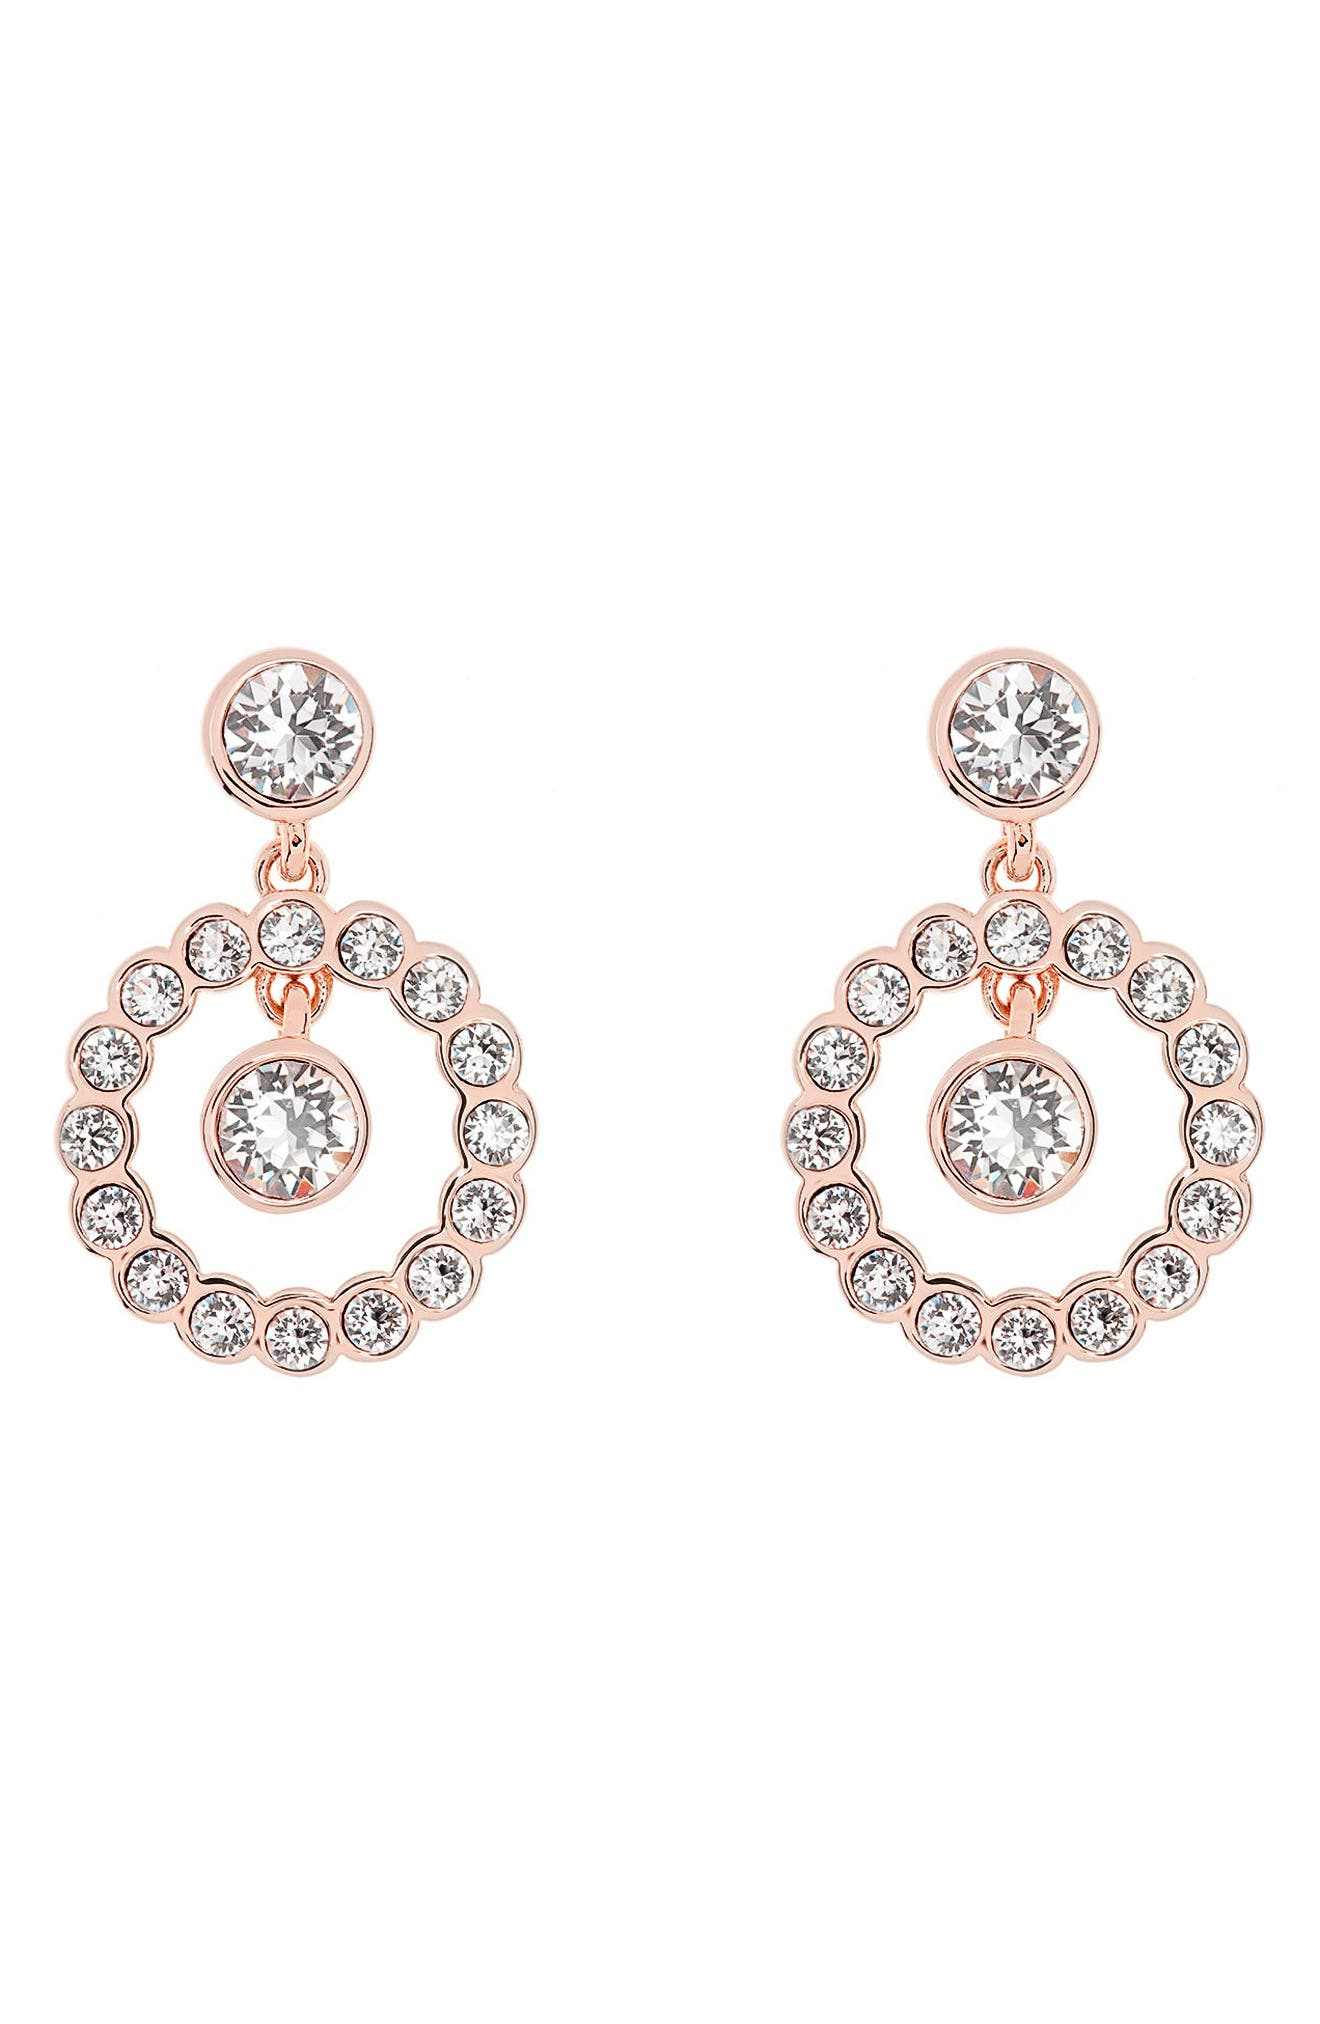 Concentric Crystal Drop Earrings,                             Main thumbnail 1, color,                             Rose Gold